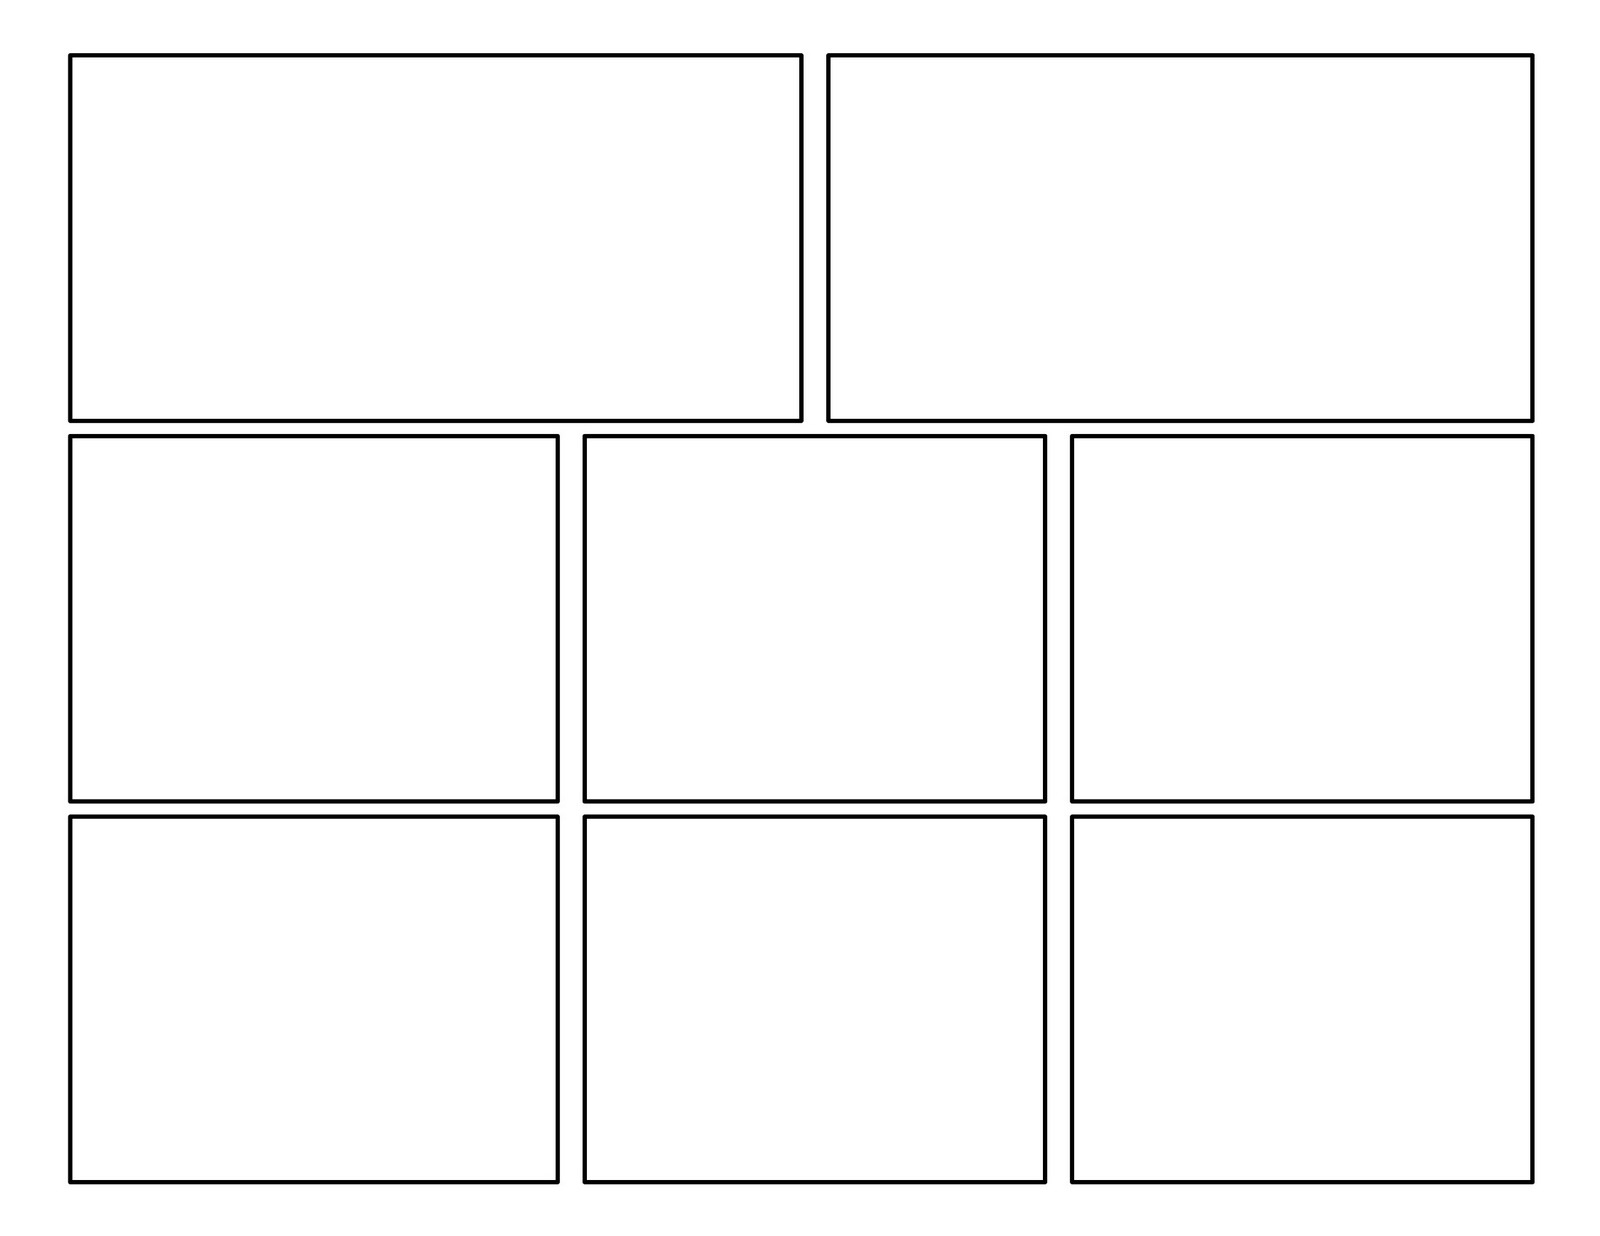 graphic regarding Free Printable Super Bowl Squares Template referred to as Soccer Sq. Template Printable. tremendous bowl squares tremendous